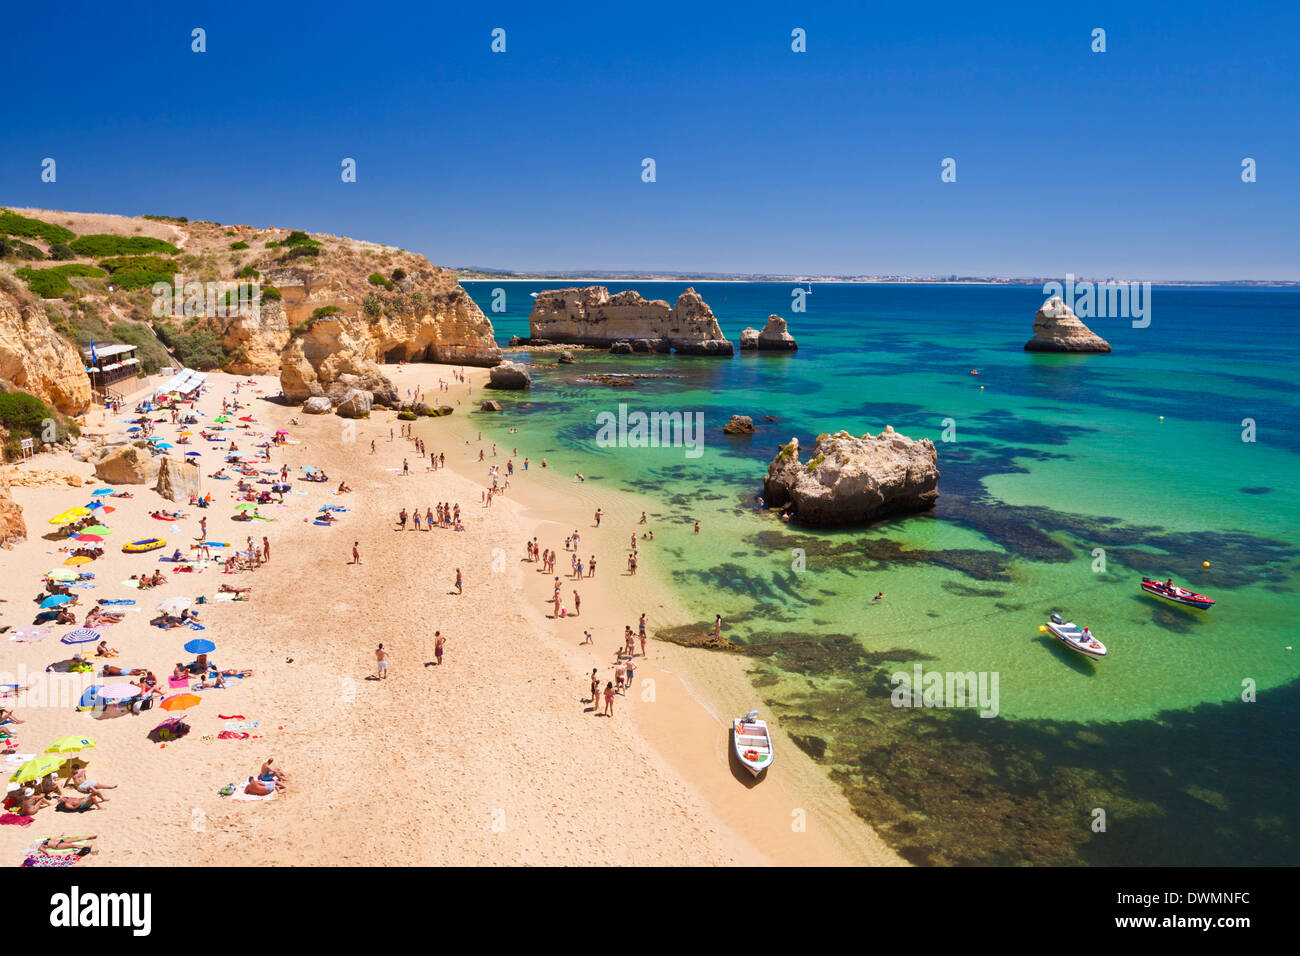 Holidaymakers sunbathing on Praia da Dona Ana, sandy beach near the resort of Lagos, Algarve, Portugal, Europe - Stock Image